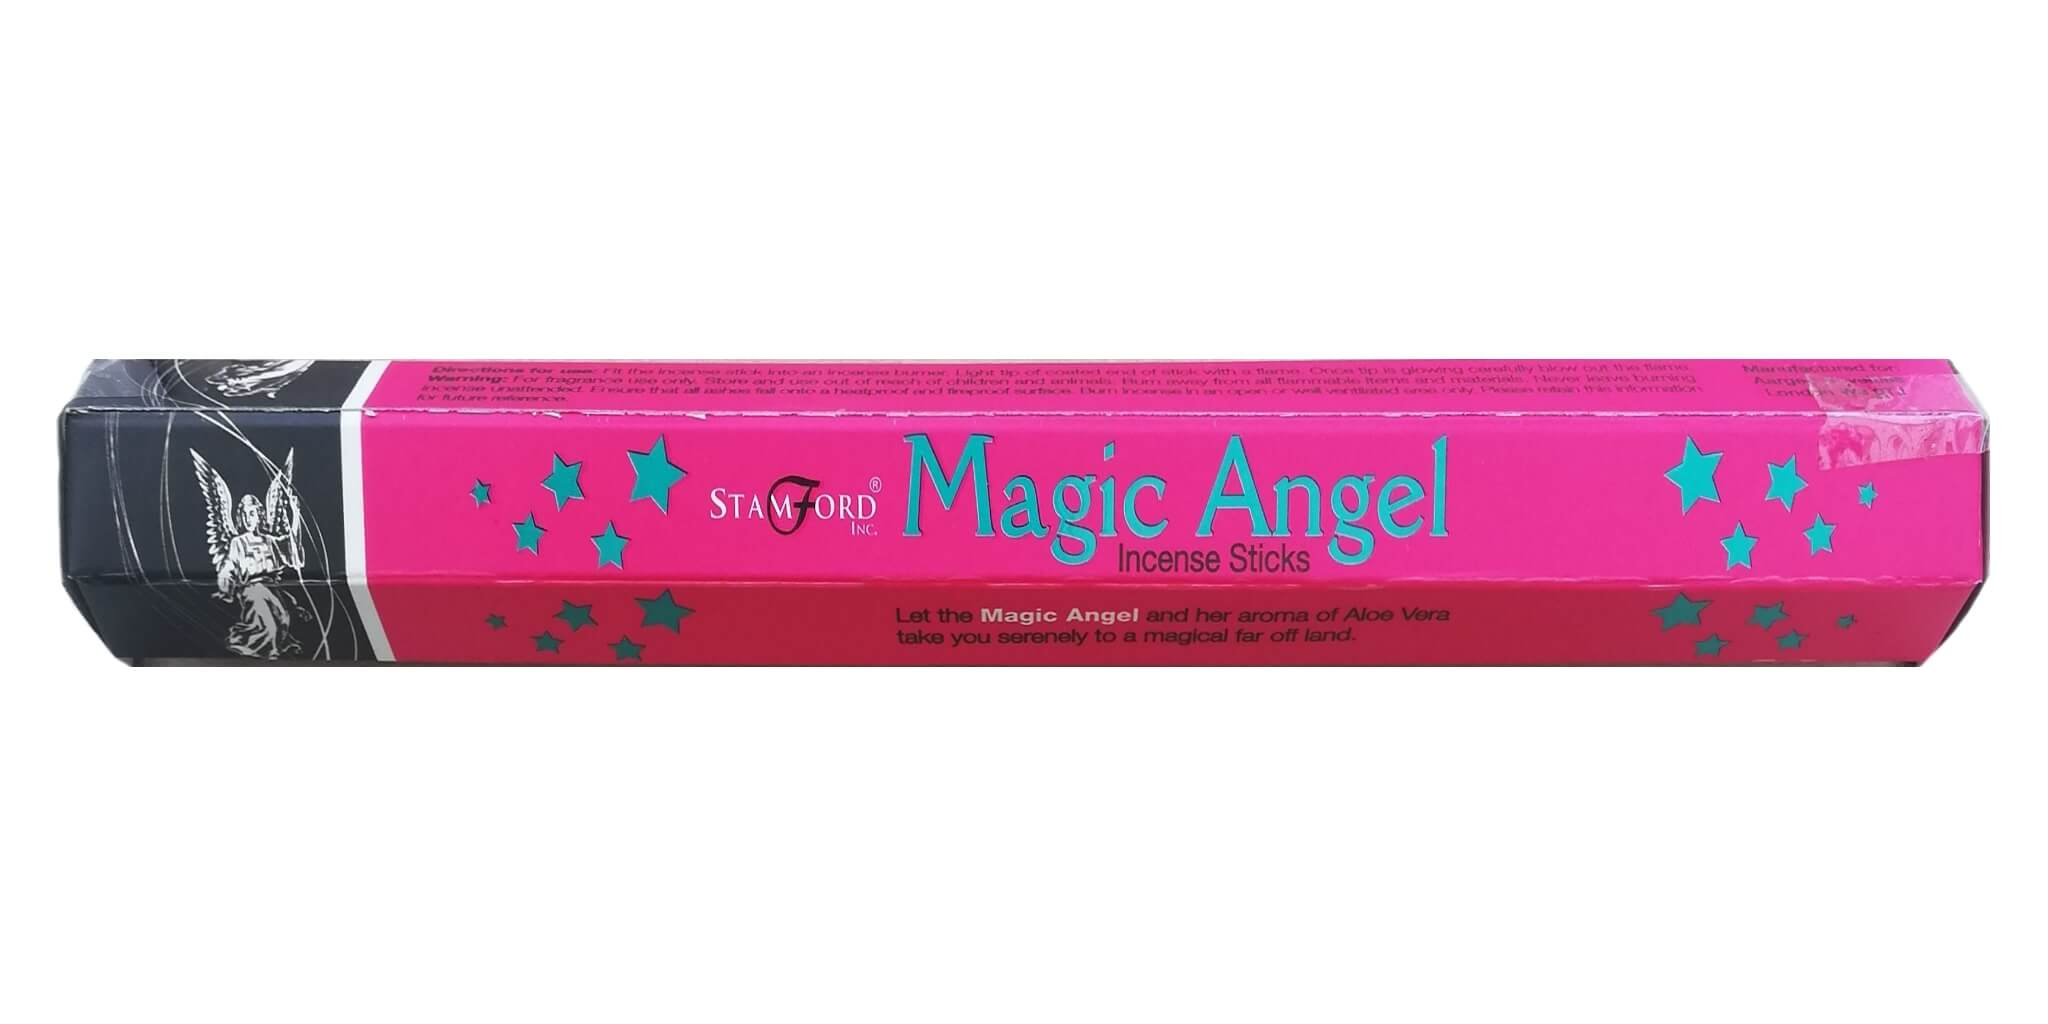 Stamford Black Angel Incense Sticks Buy 3 Get 1 Free The Crystal Magick